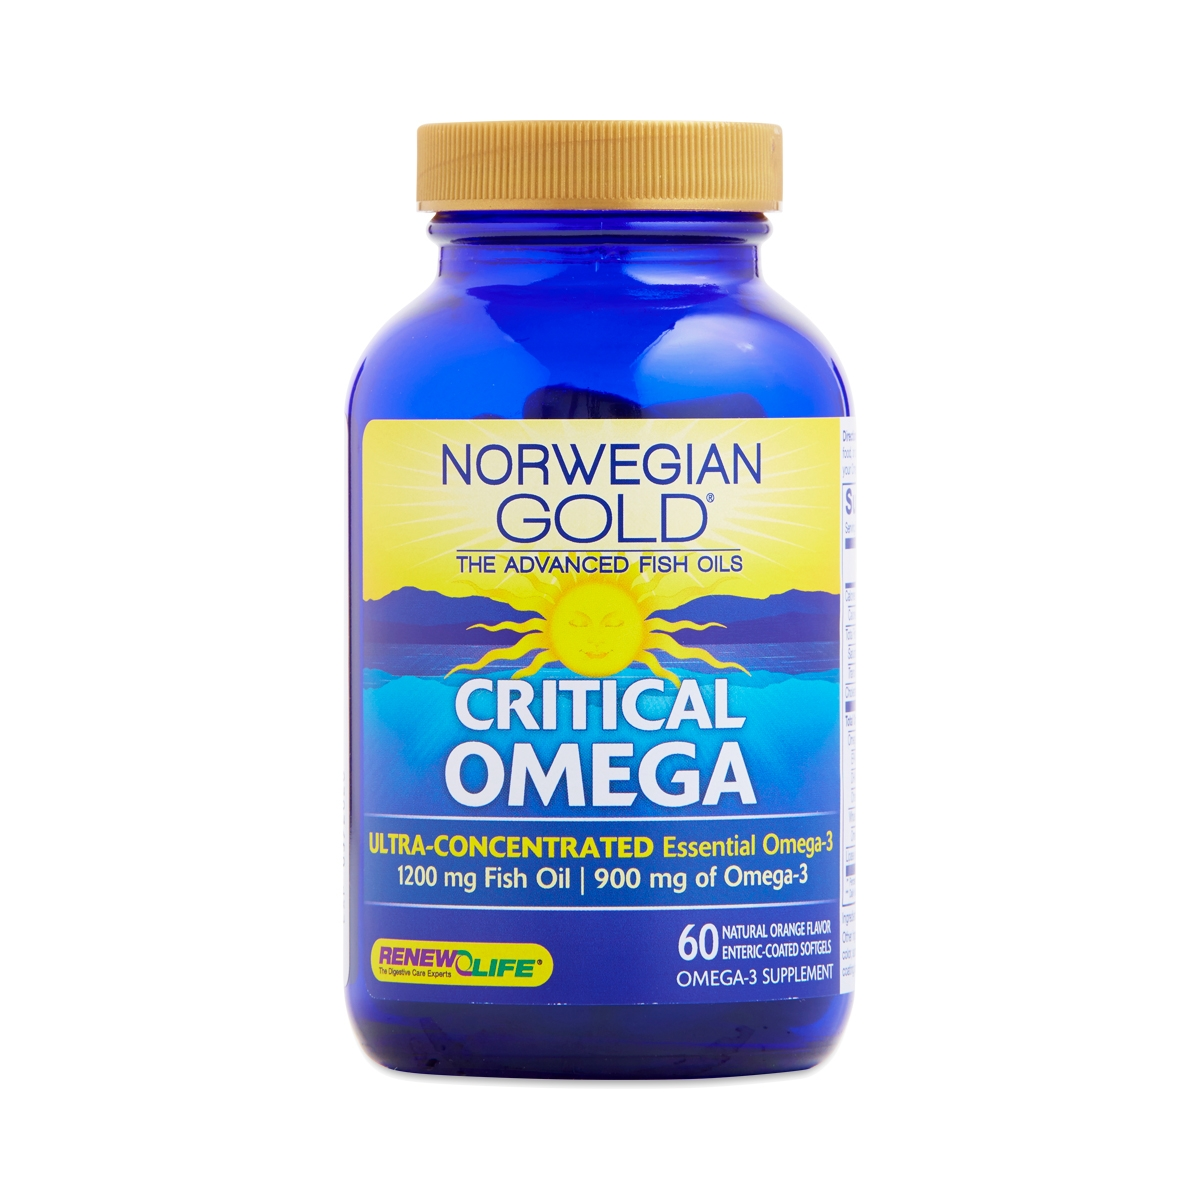 Norwegian gold critical omega 3 fish oil dha thrive market malvernweather Image collections